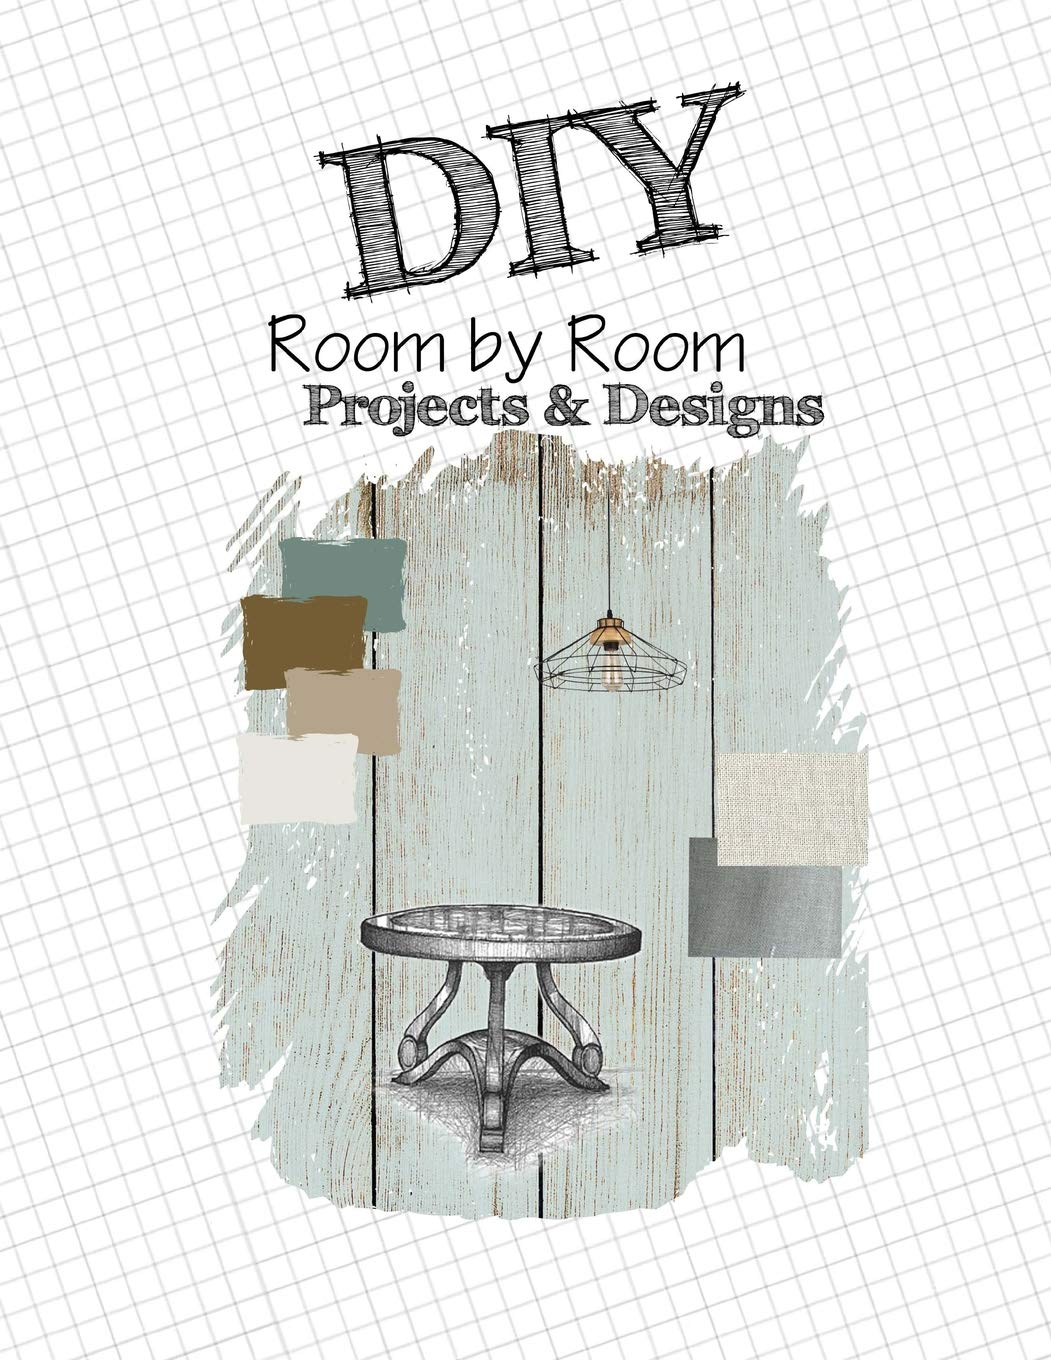 Amazon.com: DIY Room By Room Projects & Designs: Graph Paper